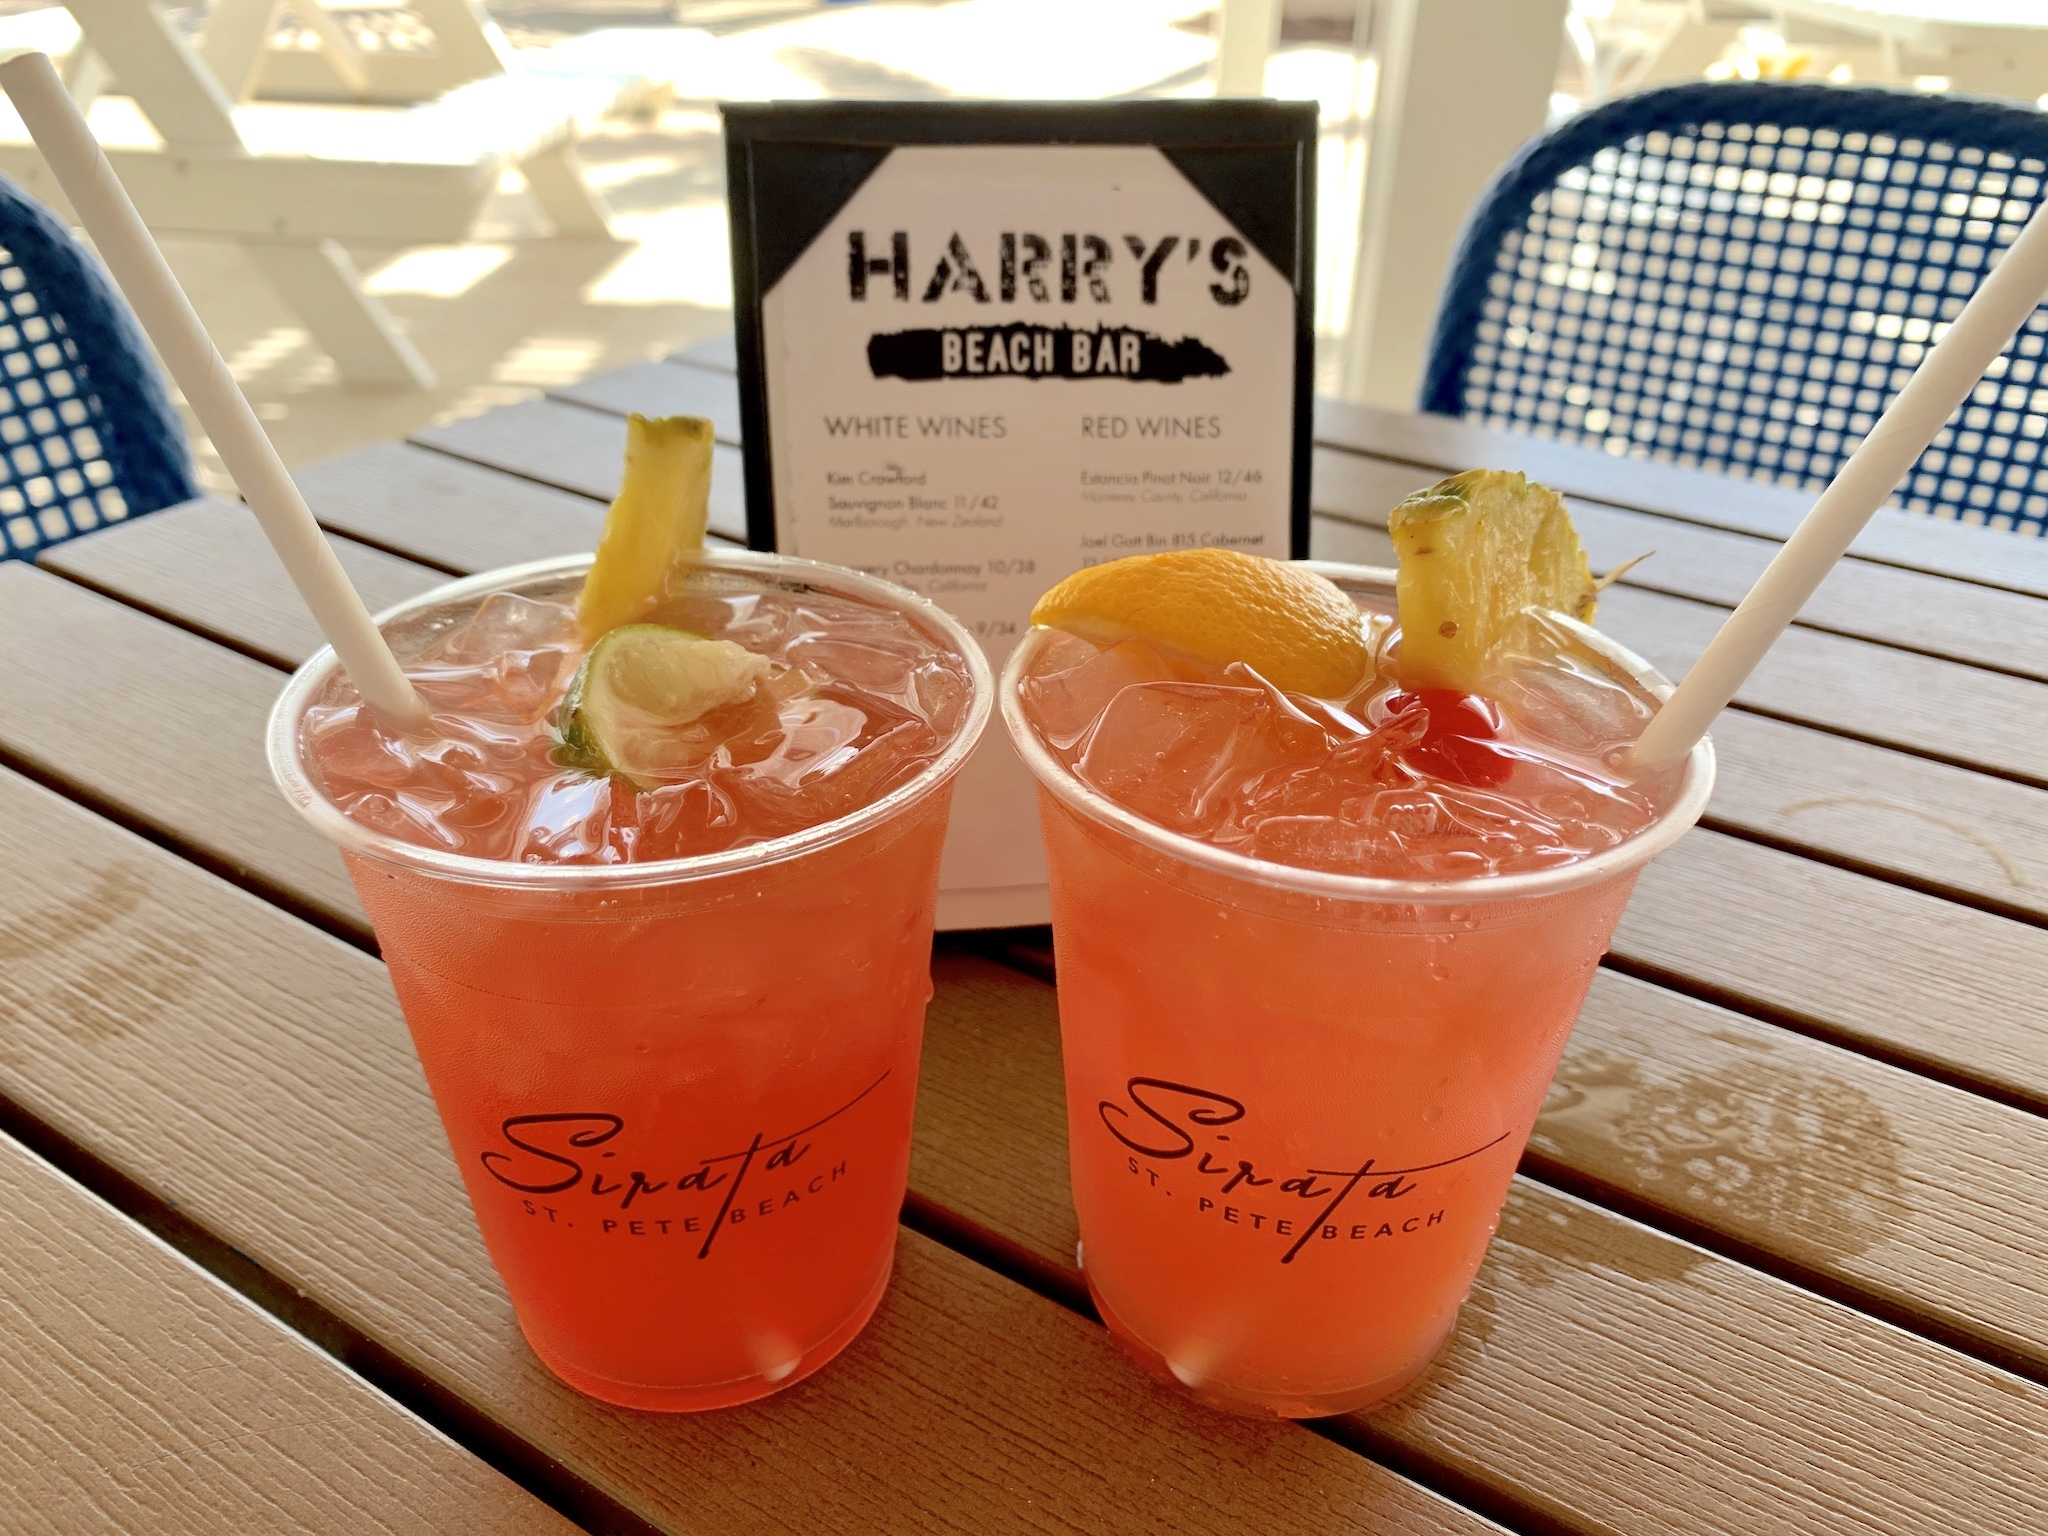 Harry's Beach Bar - Sea Breeze - Tito's, grapefruit juice, cranberry and lime; Harry's Sunset - Absolut Mandarin, grapefruit, lemonade and grenadine